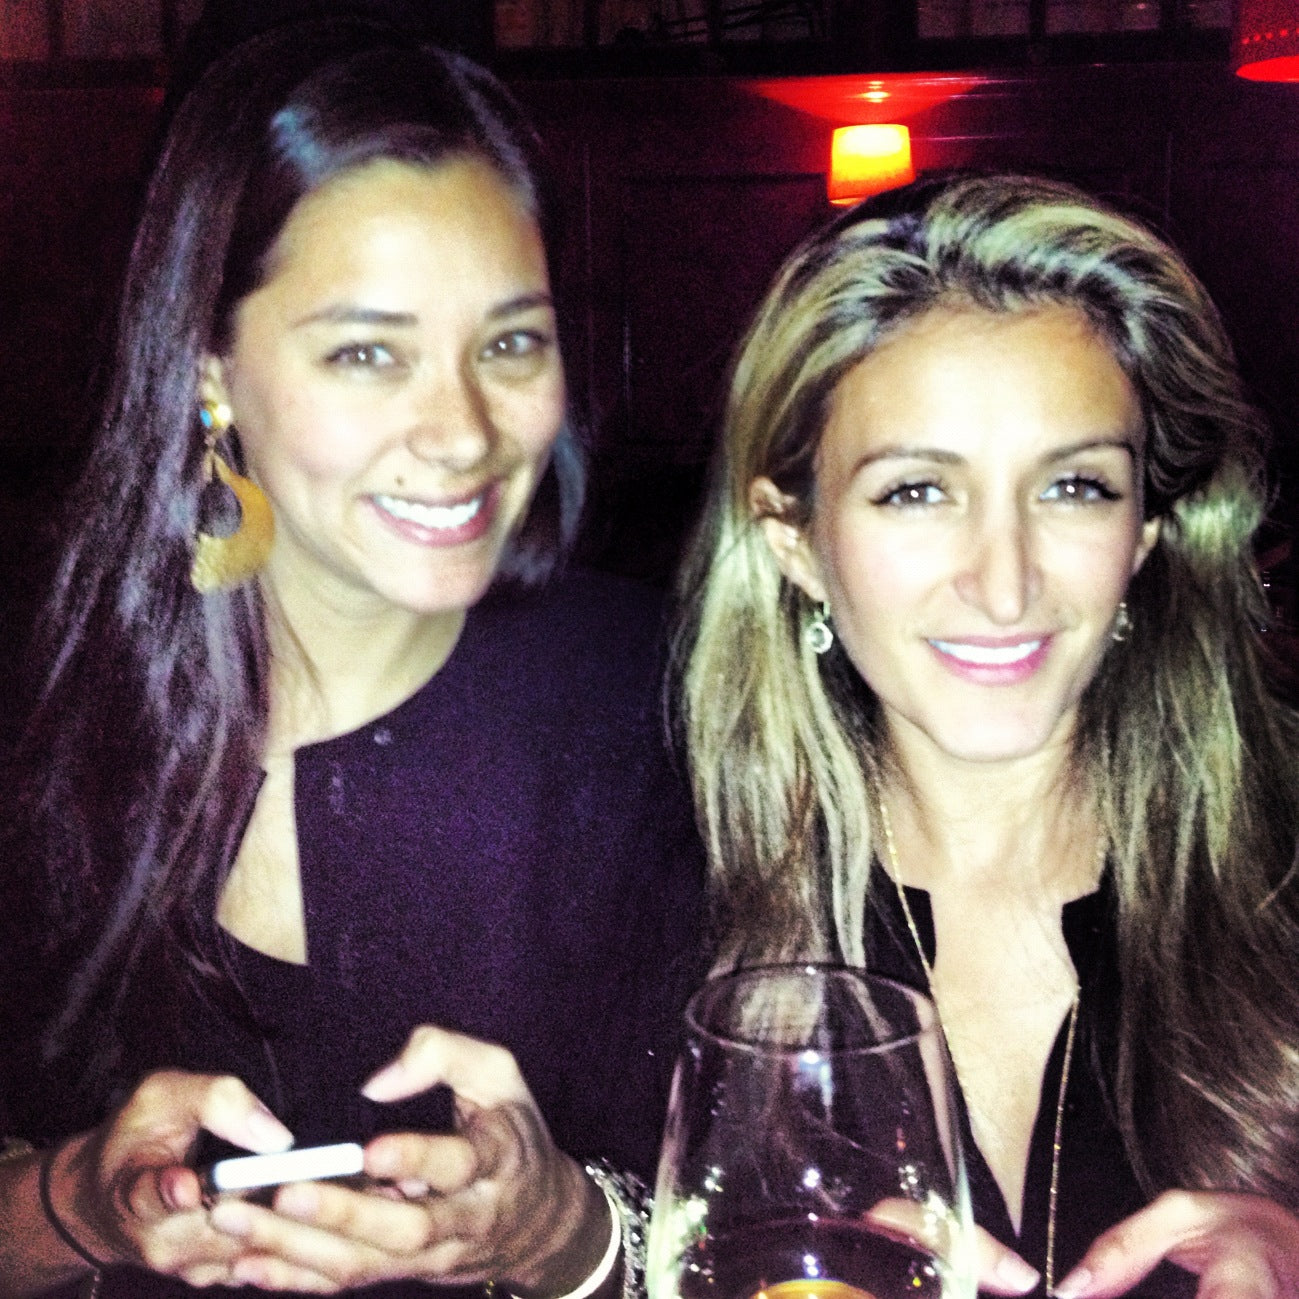 Amanda and Nazy with dueling iPhones.